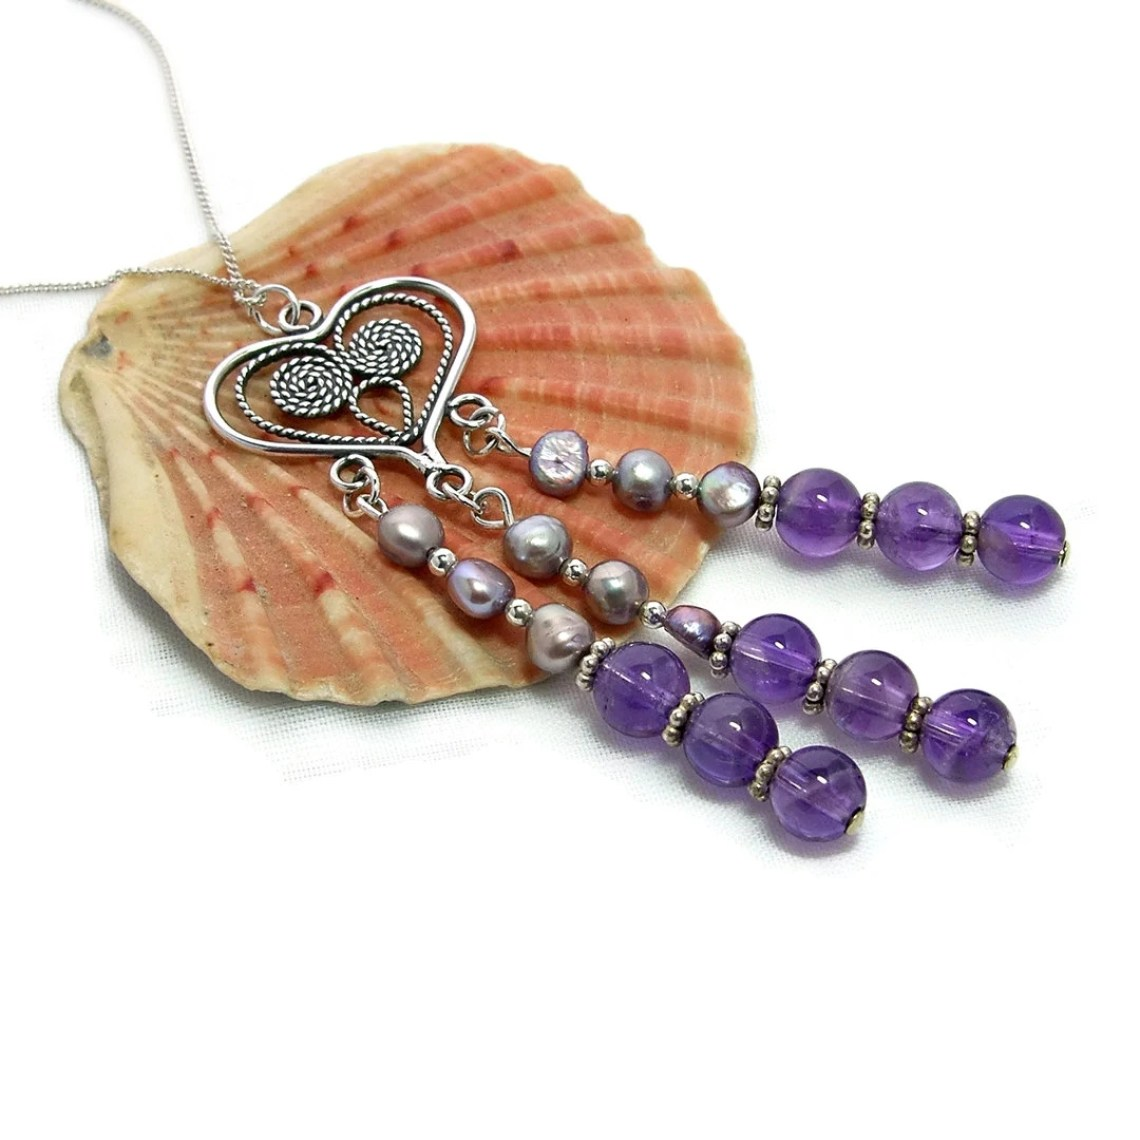 Amethyst Birthstone Necklace with Freshwater Pearls